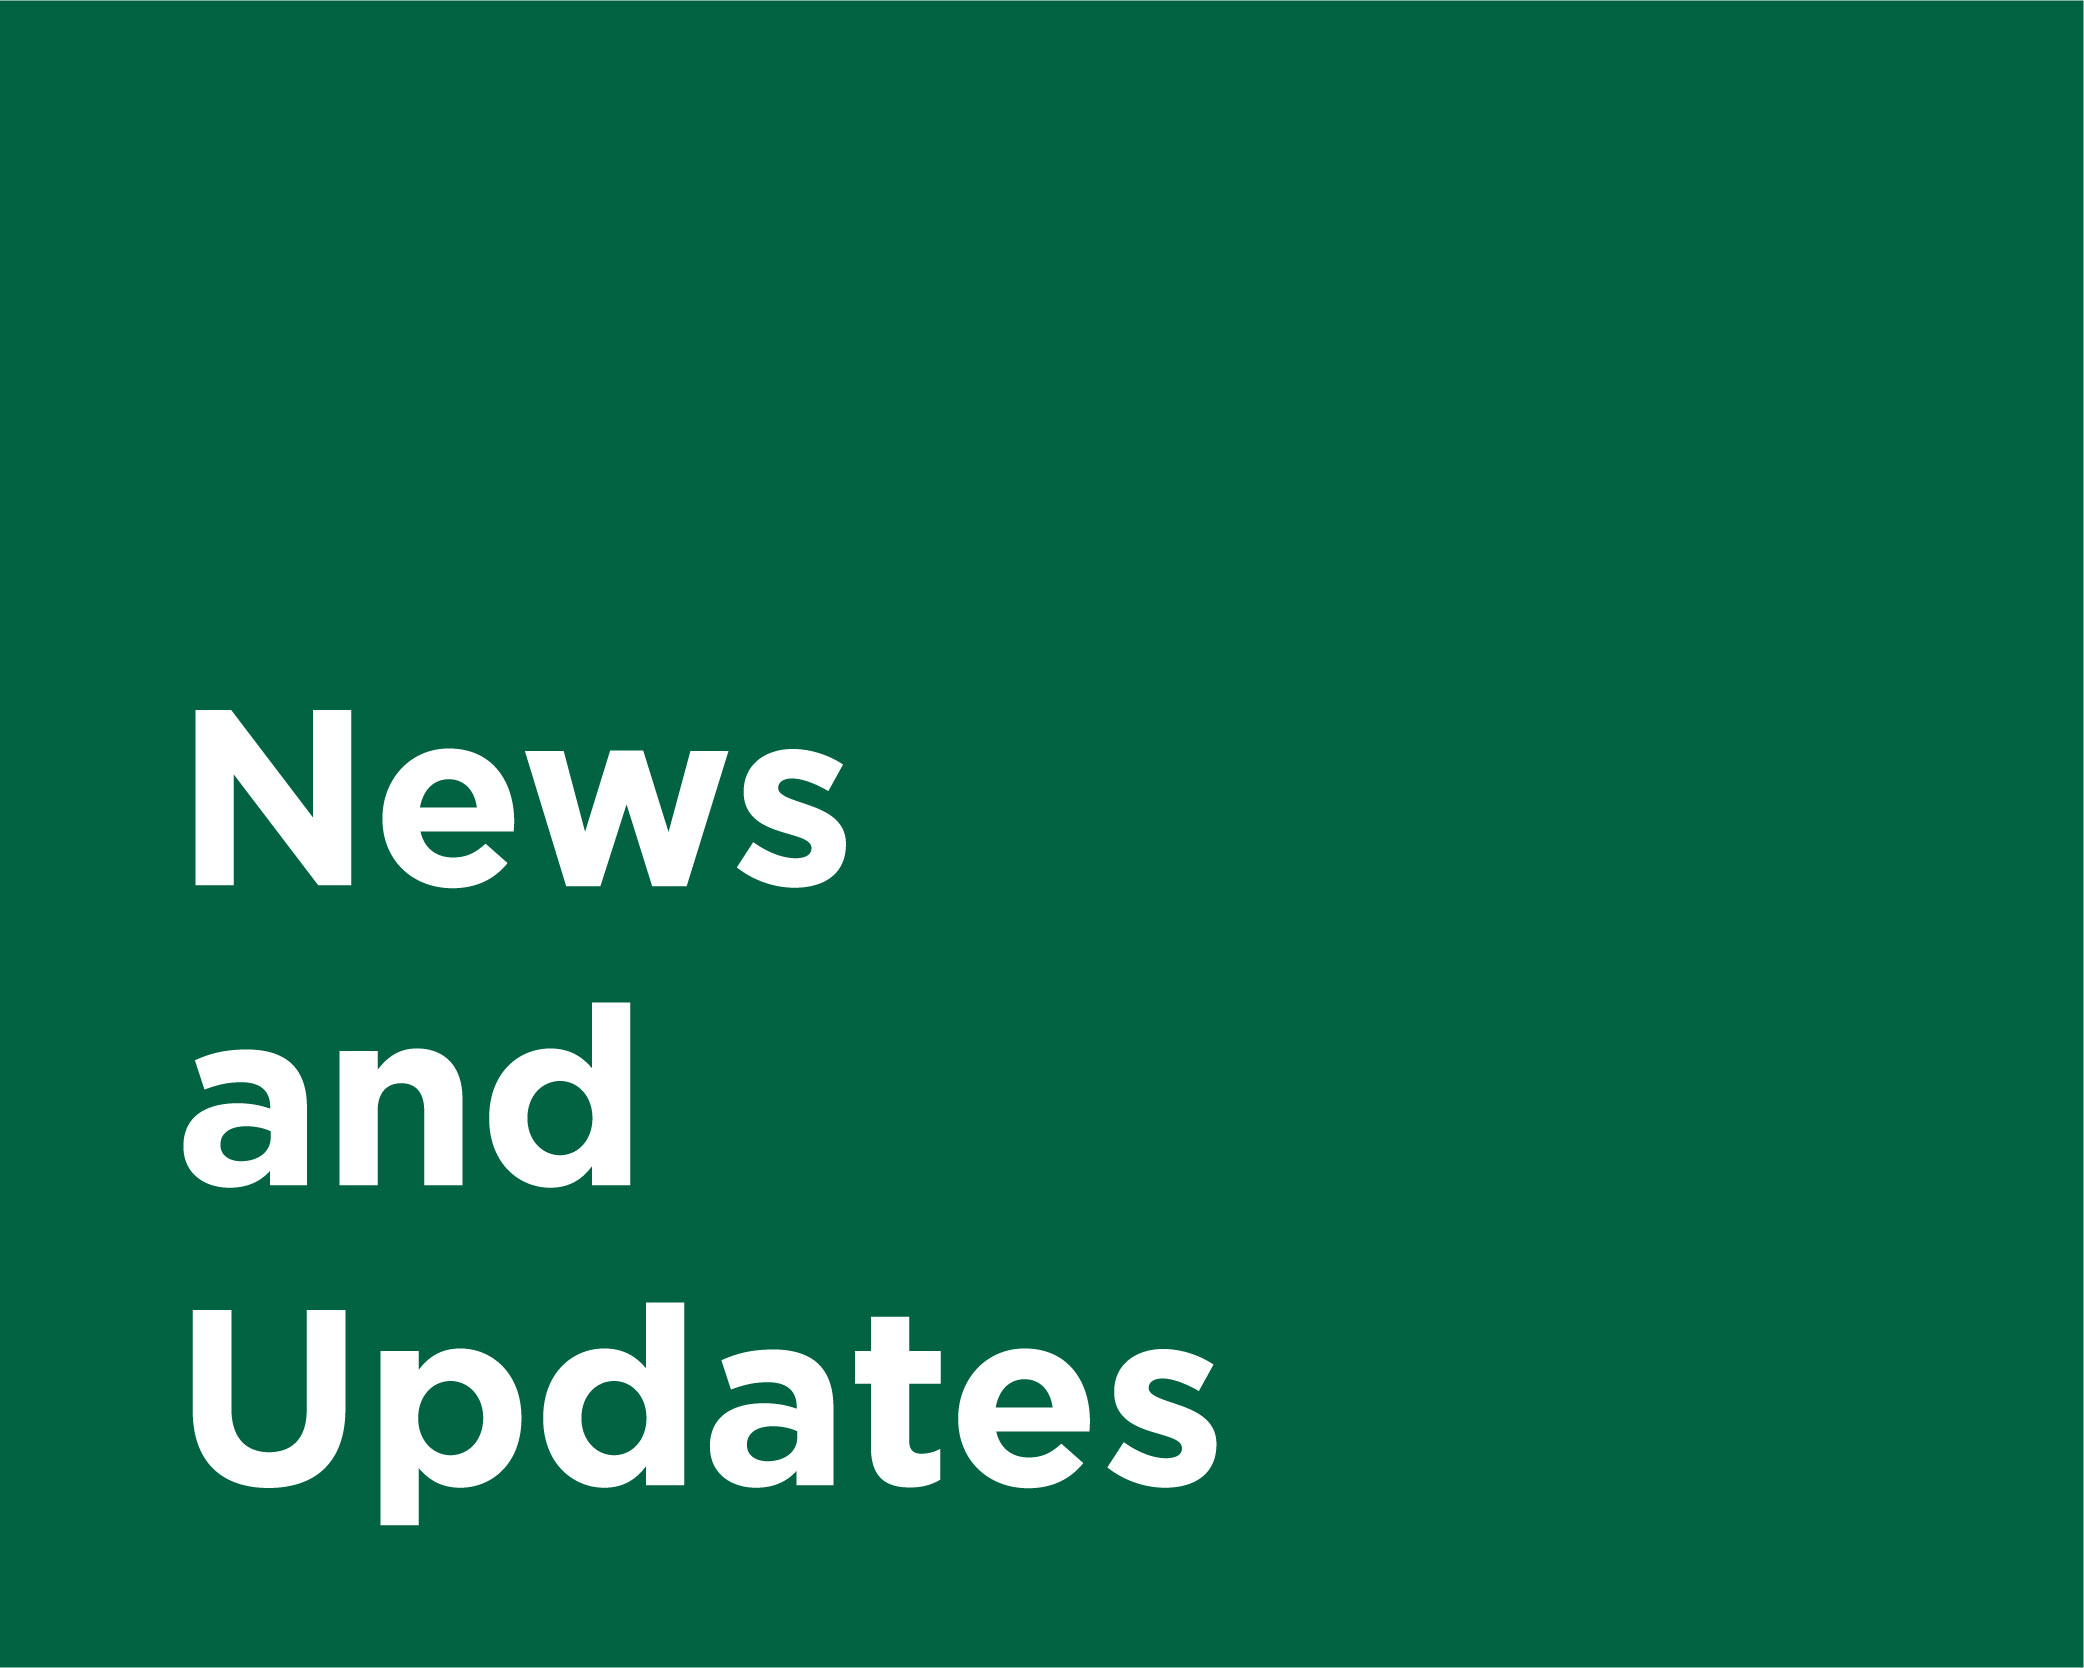 UVMHN News and Updates